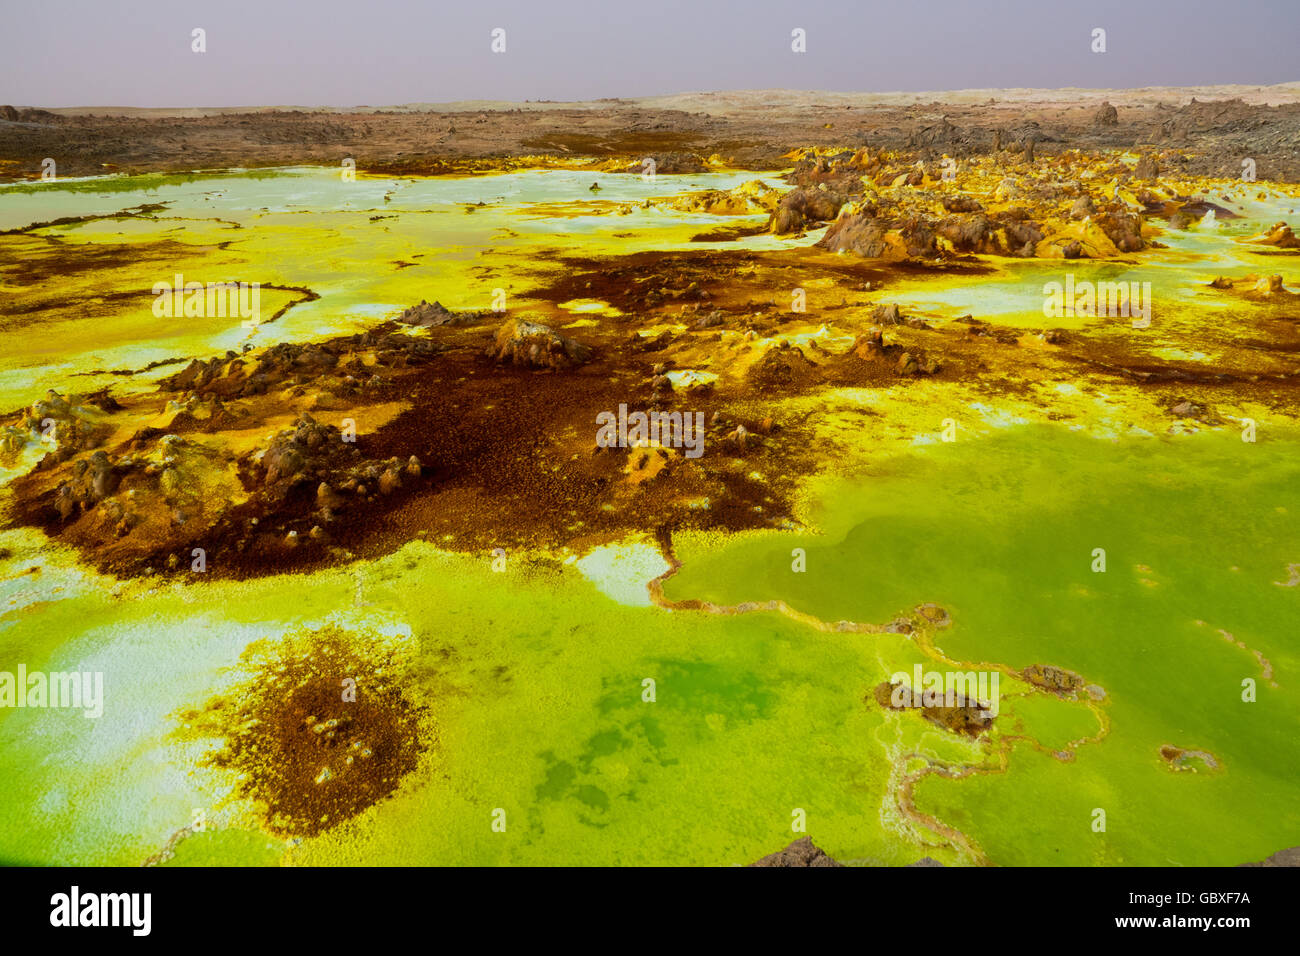 Dallol, a volcanically active area of bright chemicals in the Danakil Depression, Ethiopia - Stock Image